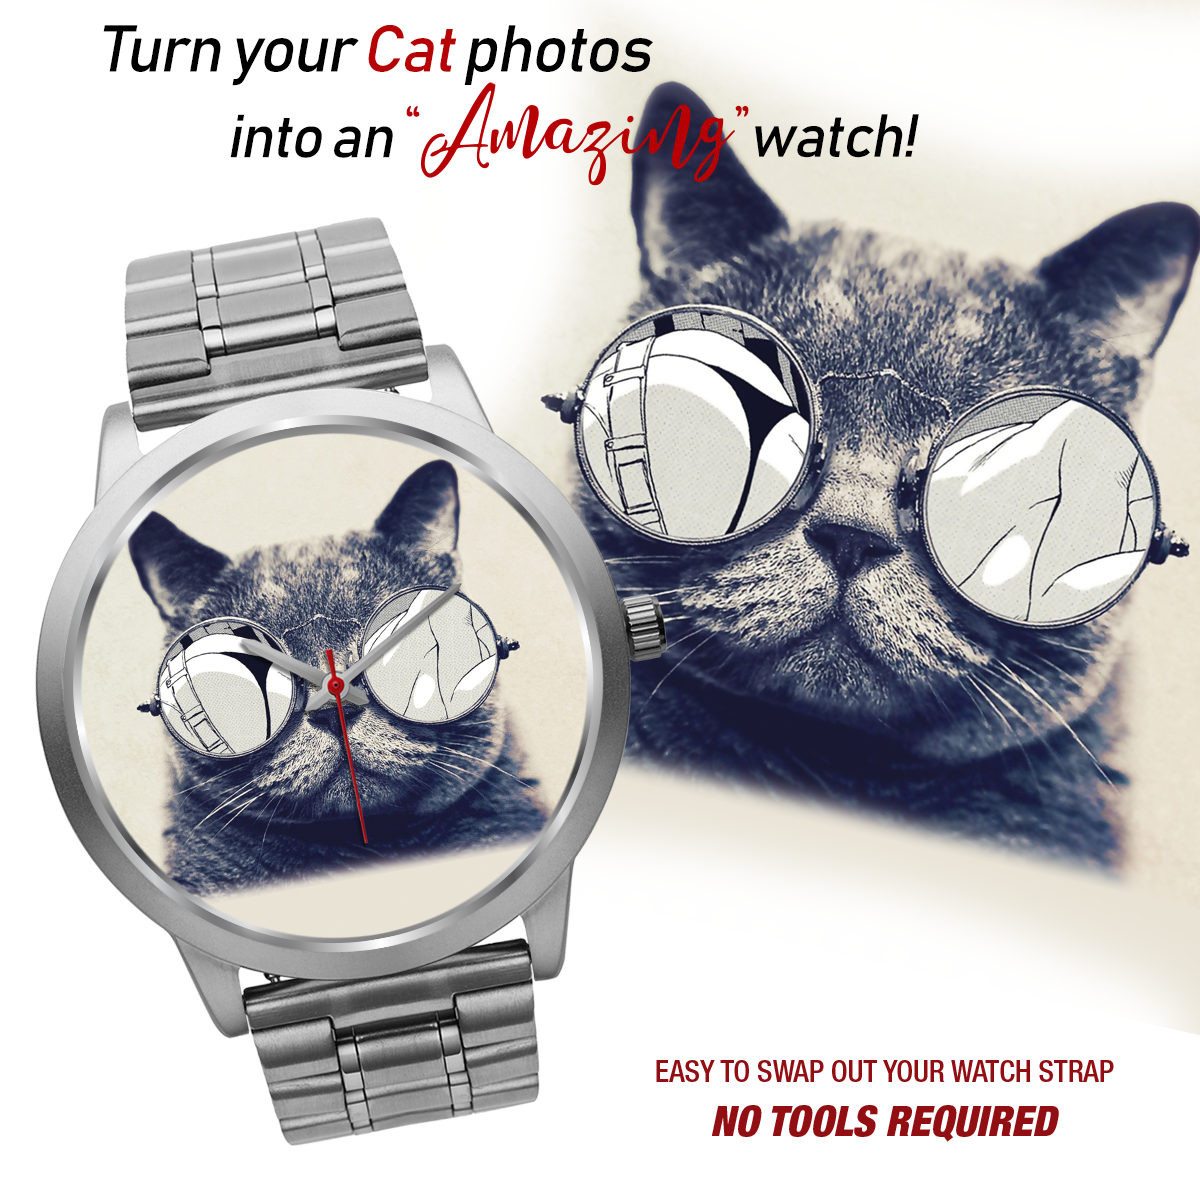 PERSONALIZED WATCH - UPLOAD YOUR BELOVED CAT PHOTOS